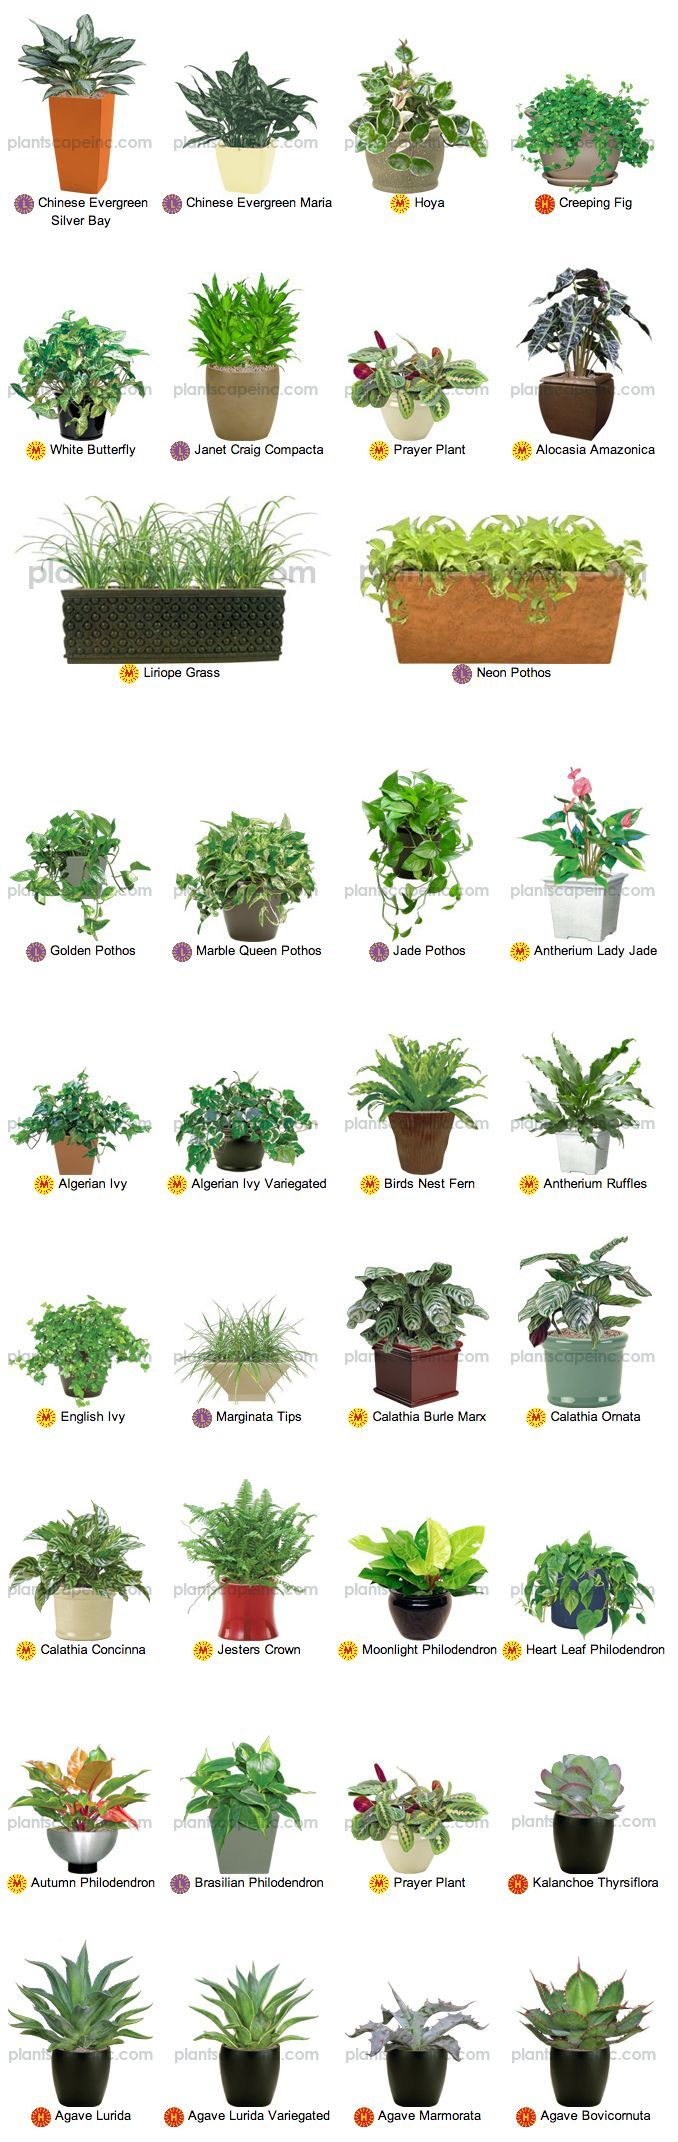 Desktop Office Plants by Plantscape Inc.: